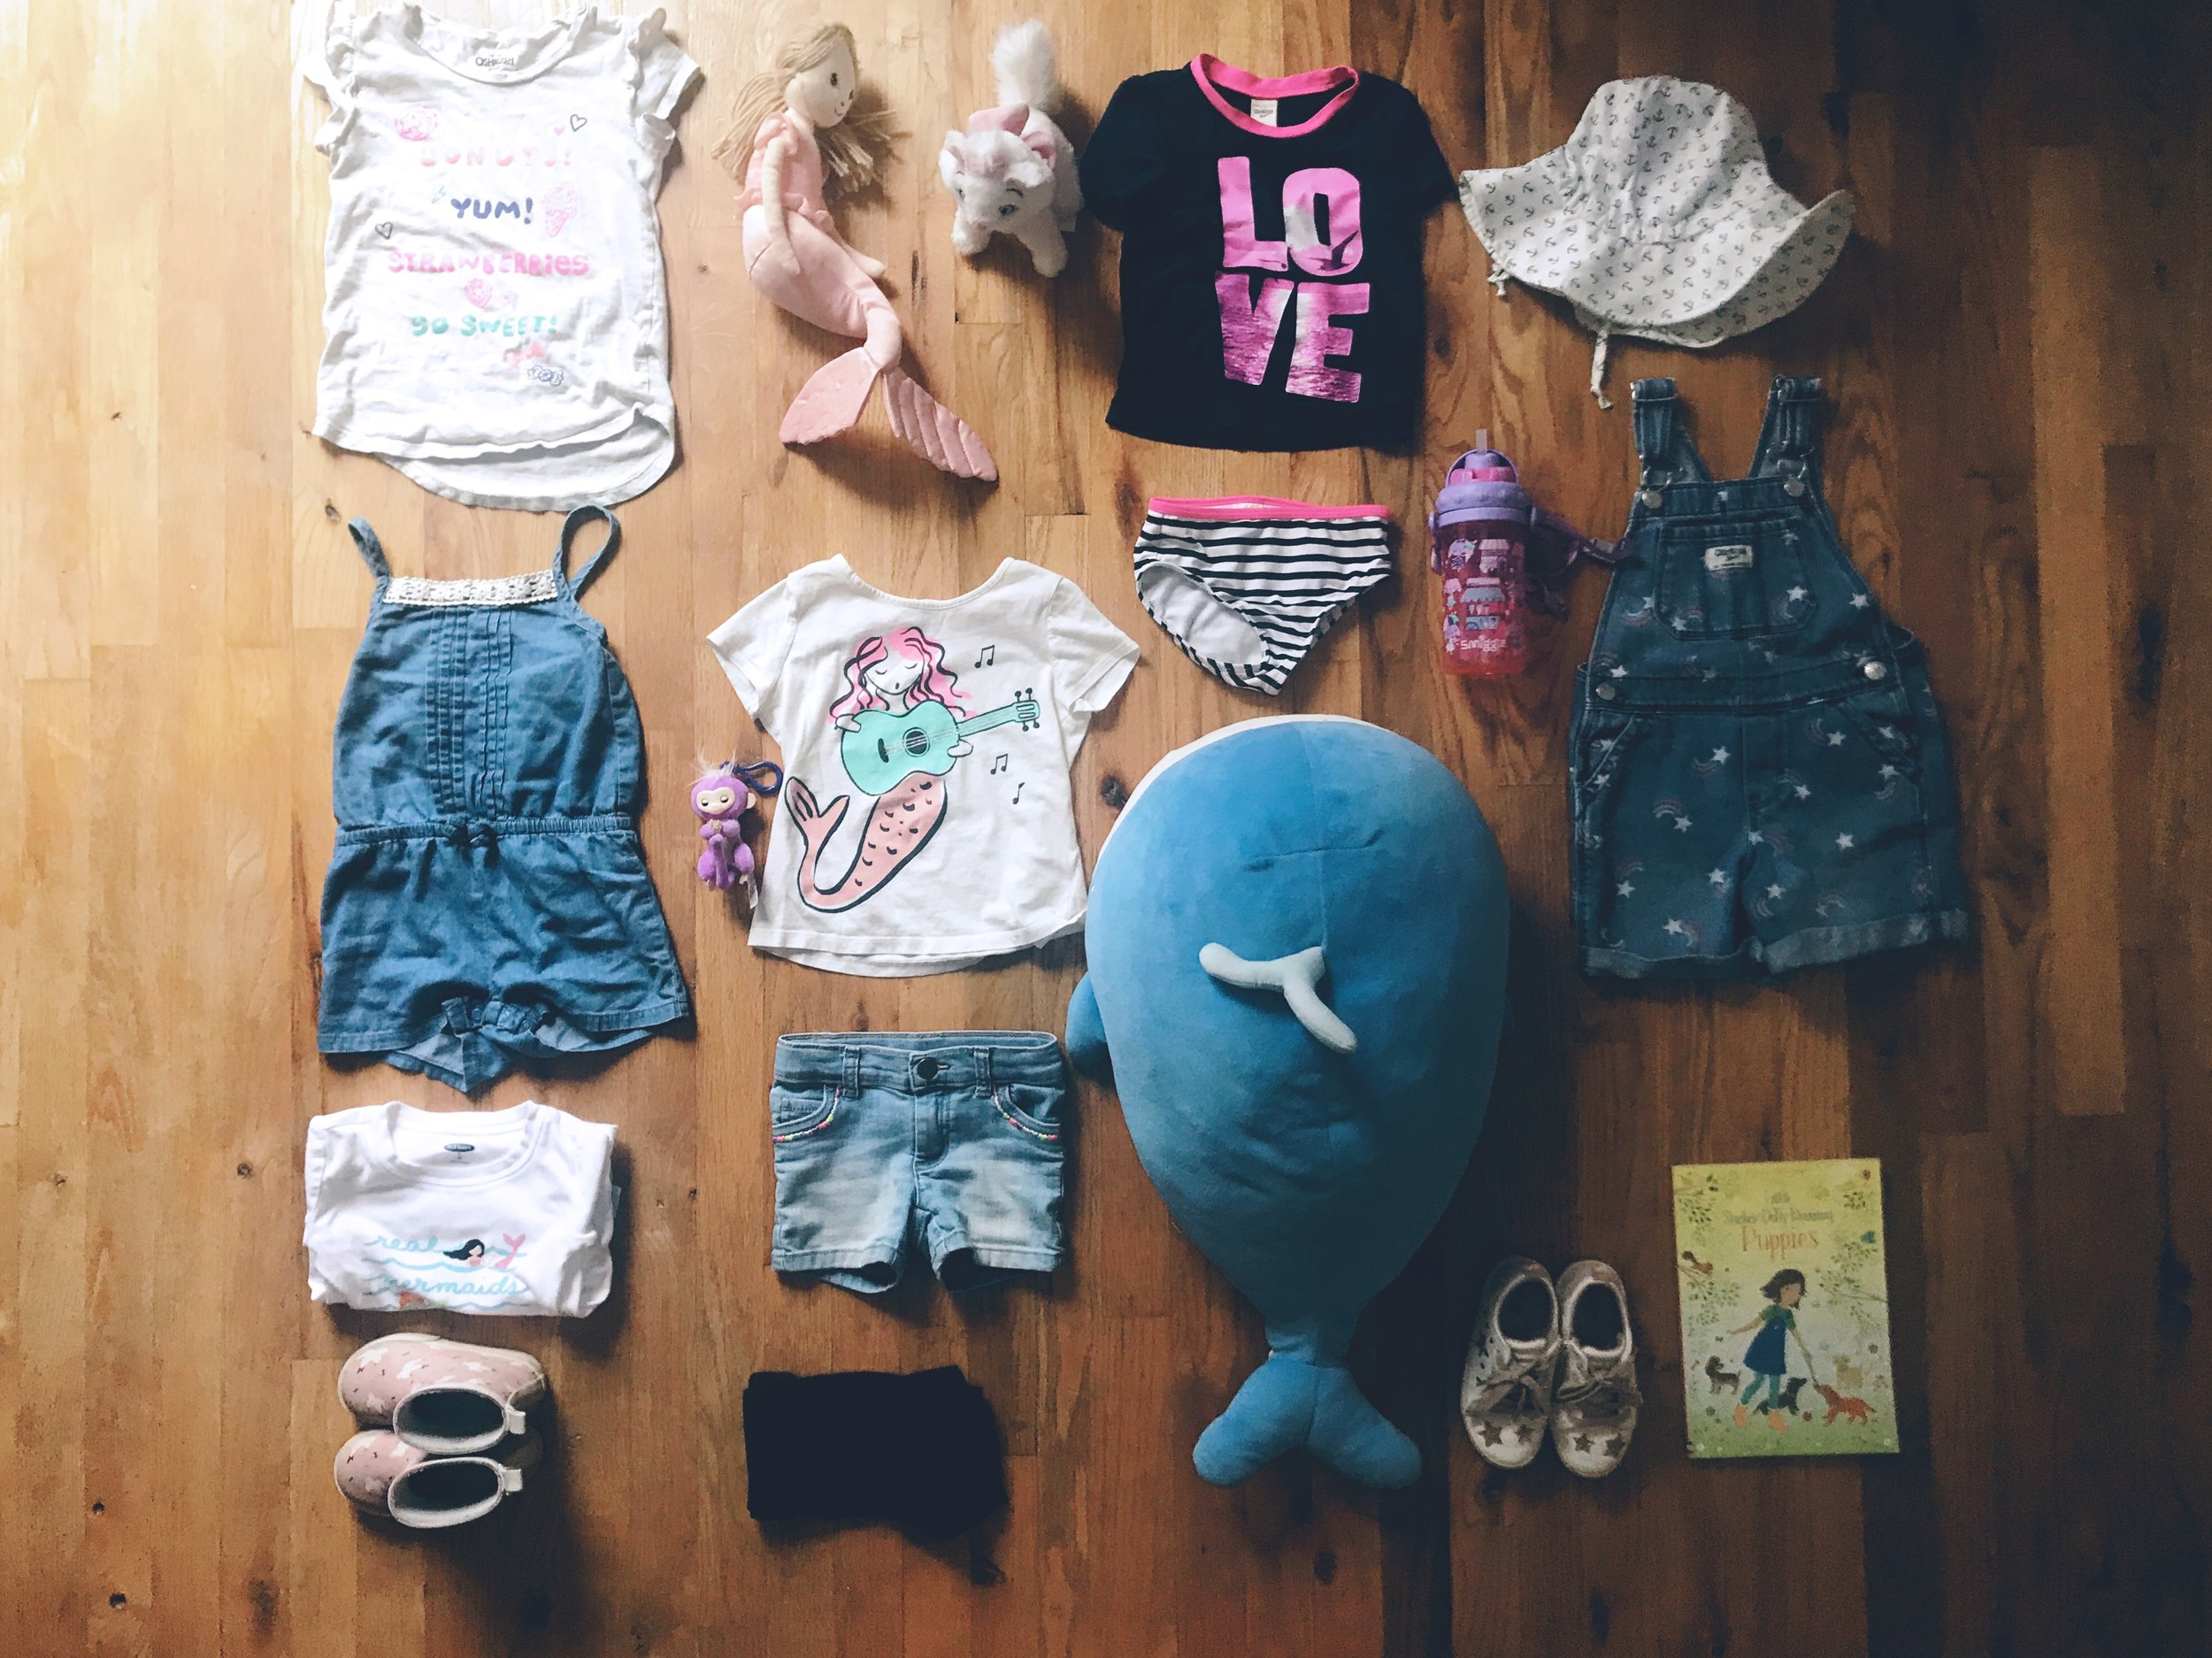 Top centre - Clockwise :  White Cat Marie - Aristacat  | Gift from Auntie Heidi,  LOVE Swimsuit   | Joe Fresh,   Anchor Hat   | Fluffy Bottom Babies,   Rainbow Overalls   | Carters,   Water Bottle  | Gift from Yeye from trip to Hong Kong,  Puppies Sticker Book   | From Indigo for PEI road trip,   Star Sneakers   | Zara,   Whale  | long ago gift from Auntie Nicole,  Black Shorts   | Joe Fresh,   Rain Boots   | H&M,   Mermaid Pyjamas   | Carters,   Jean Shorts   | Carters,   Jean romper   | Carters,   Fingerling key chain  | gift from family friend,  Mermaid t-shirt  | Second hand find from Auntie Nicole,  Donought t-shirt     | Carters,   Mermaid   | Fluffy Bottom Babies